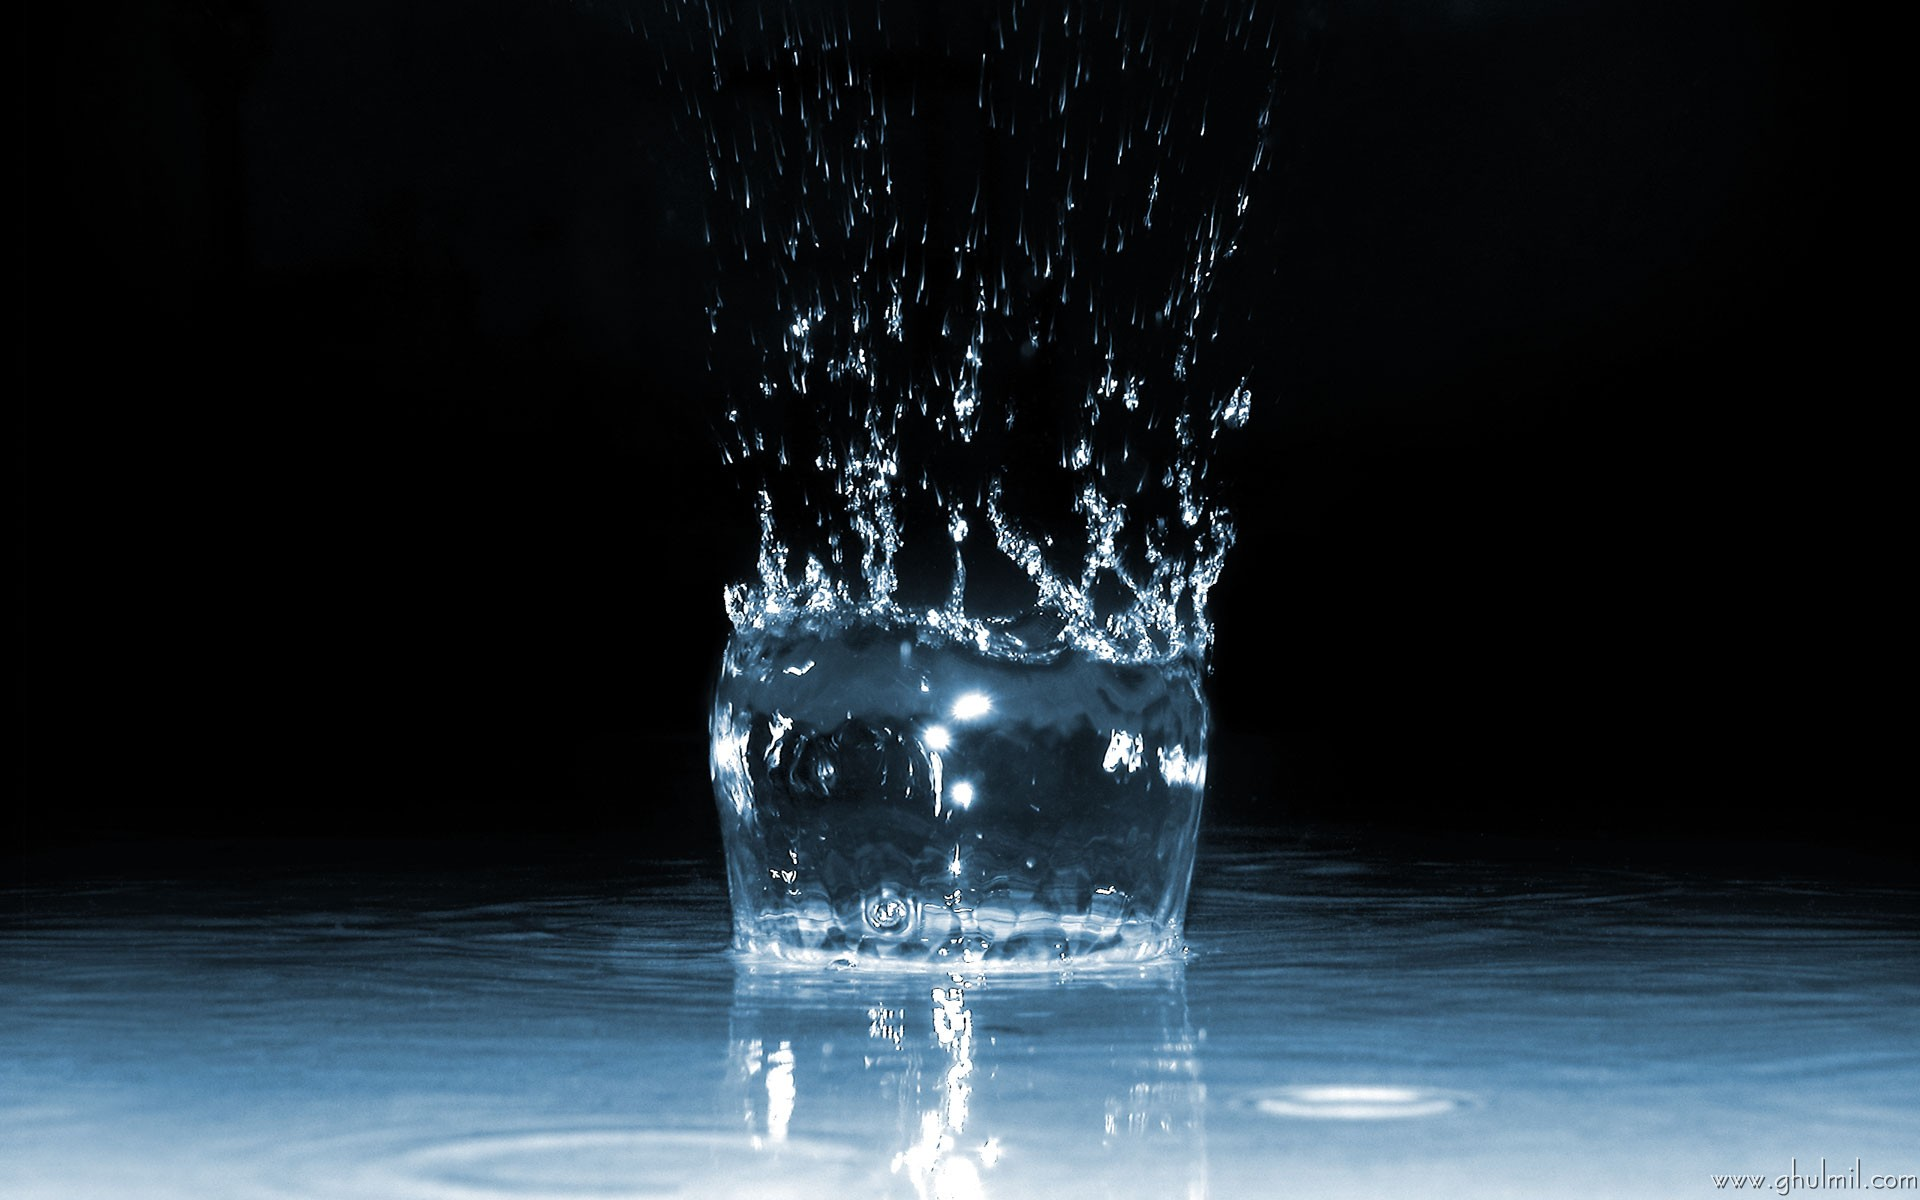 7040507-water-drops-background